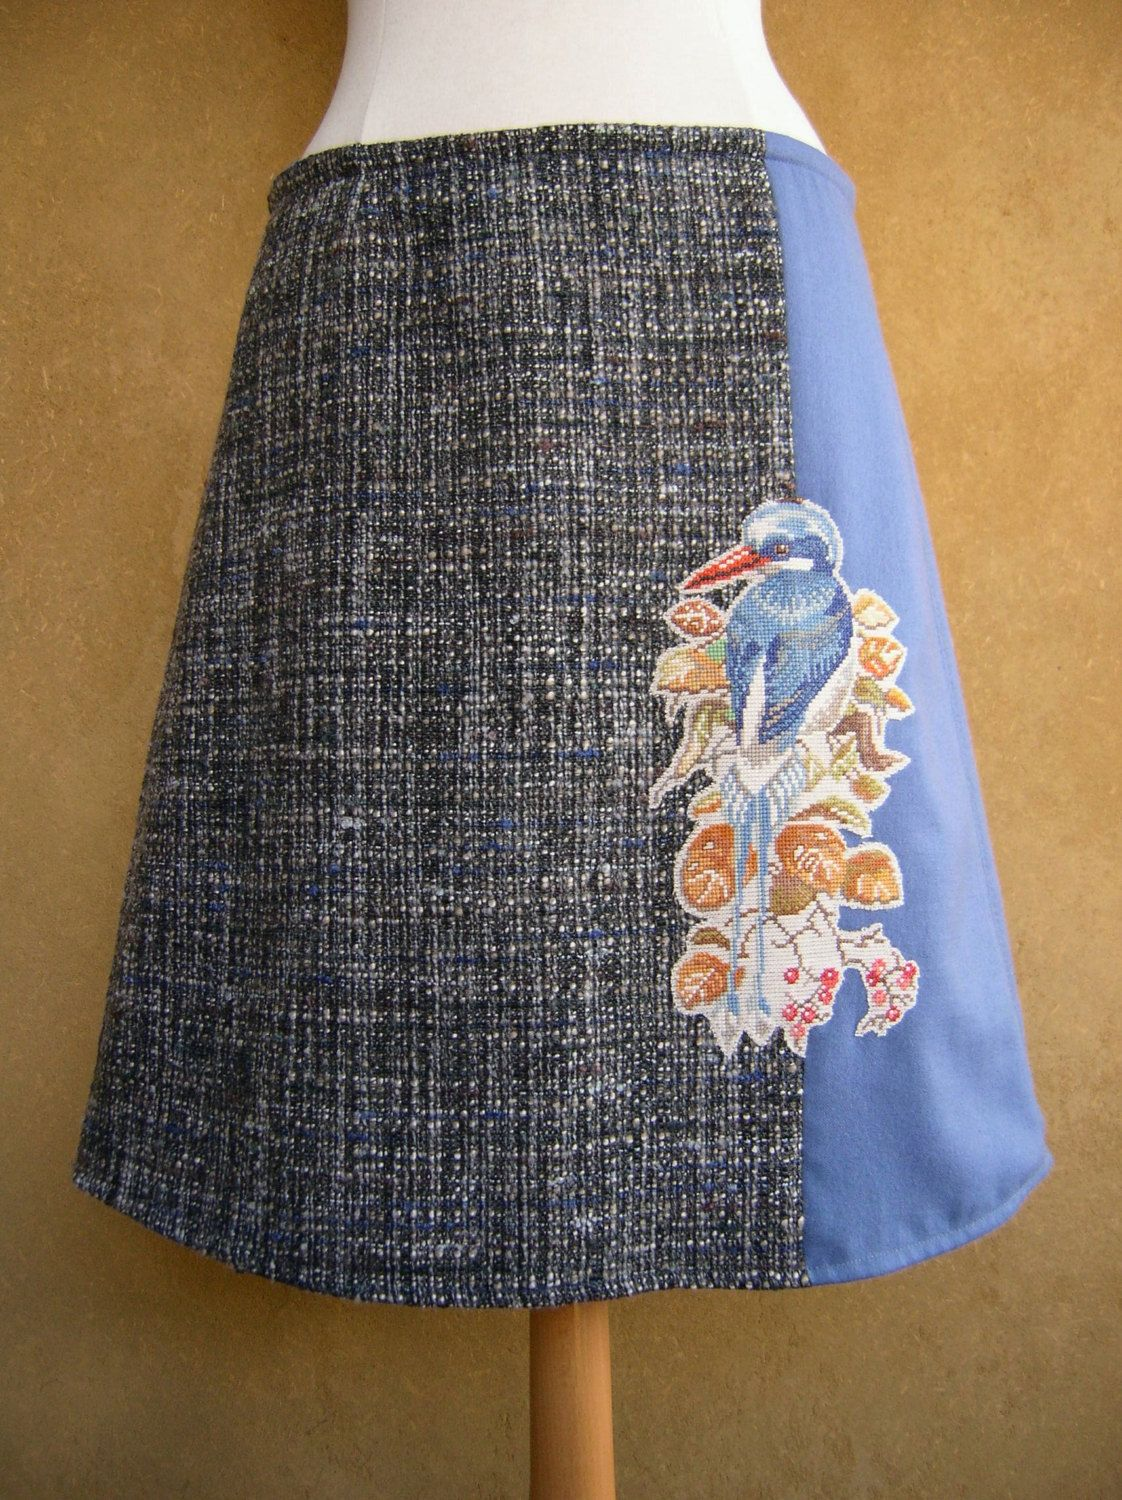 Mot Mot Bird embroidery skirt, A-line skirt, tropical bird skirt, embroidery applique, fully lined, vintage wool, blue gray, size Medium door LUREaLURE op Etsy